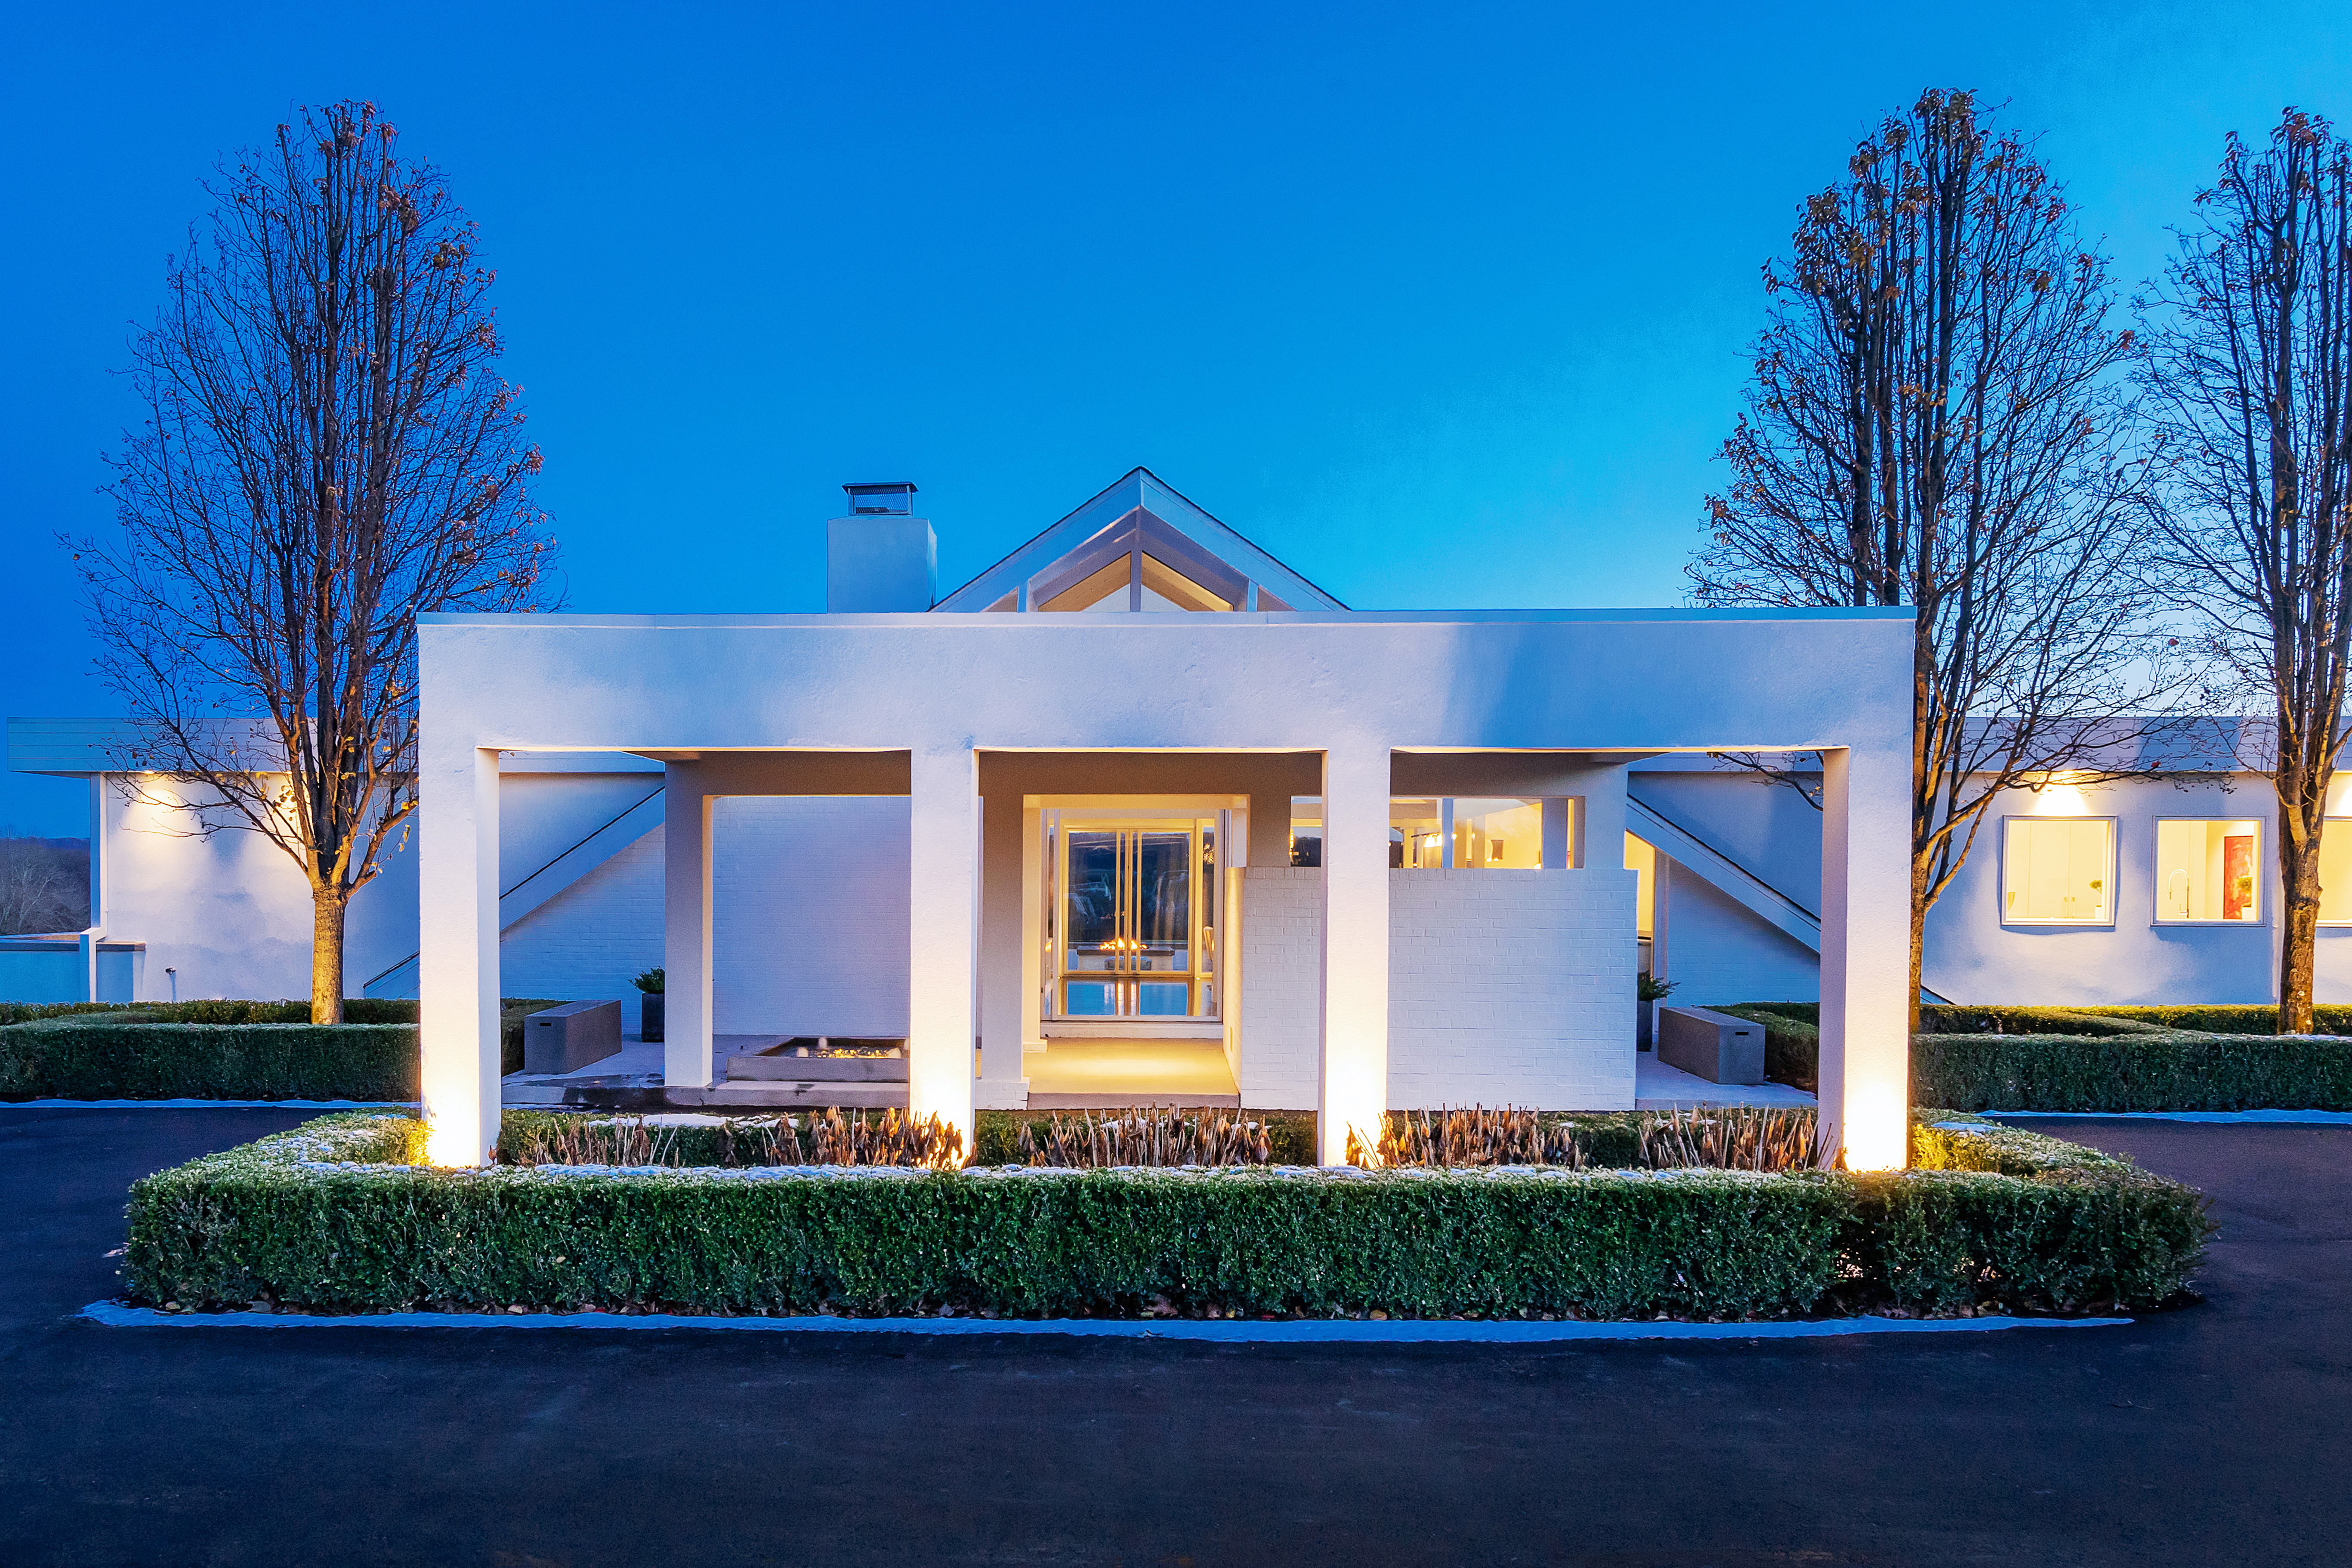 A night view of a white house that features a boxy entrance and an A-Frame-style peaked roof behind it.